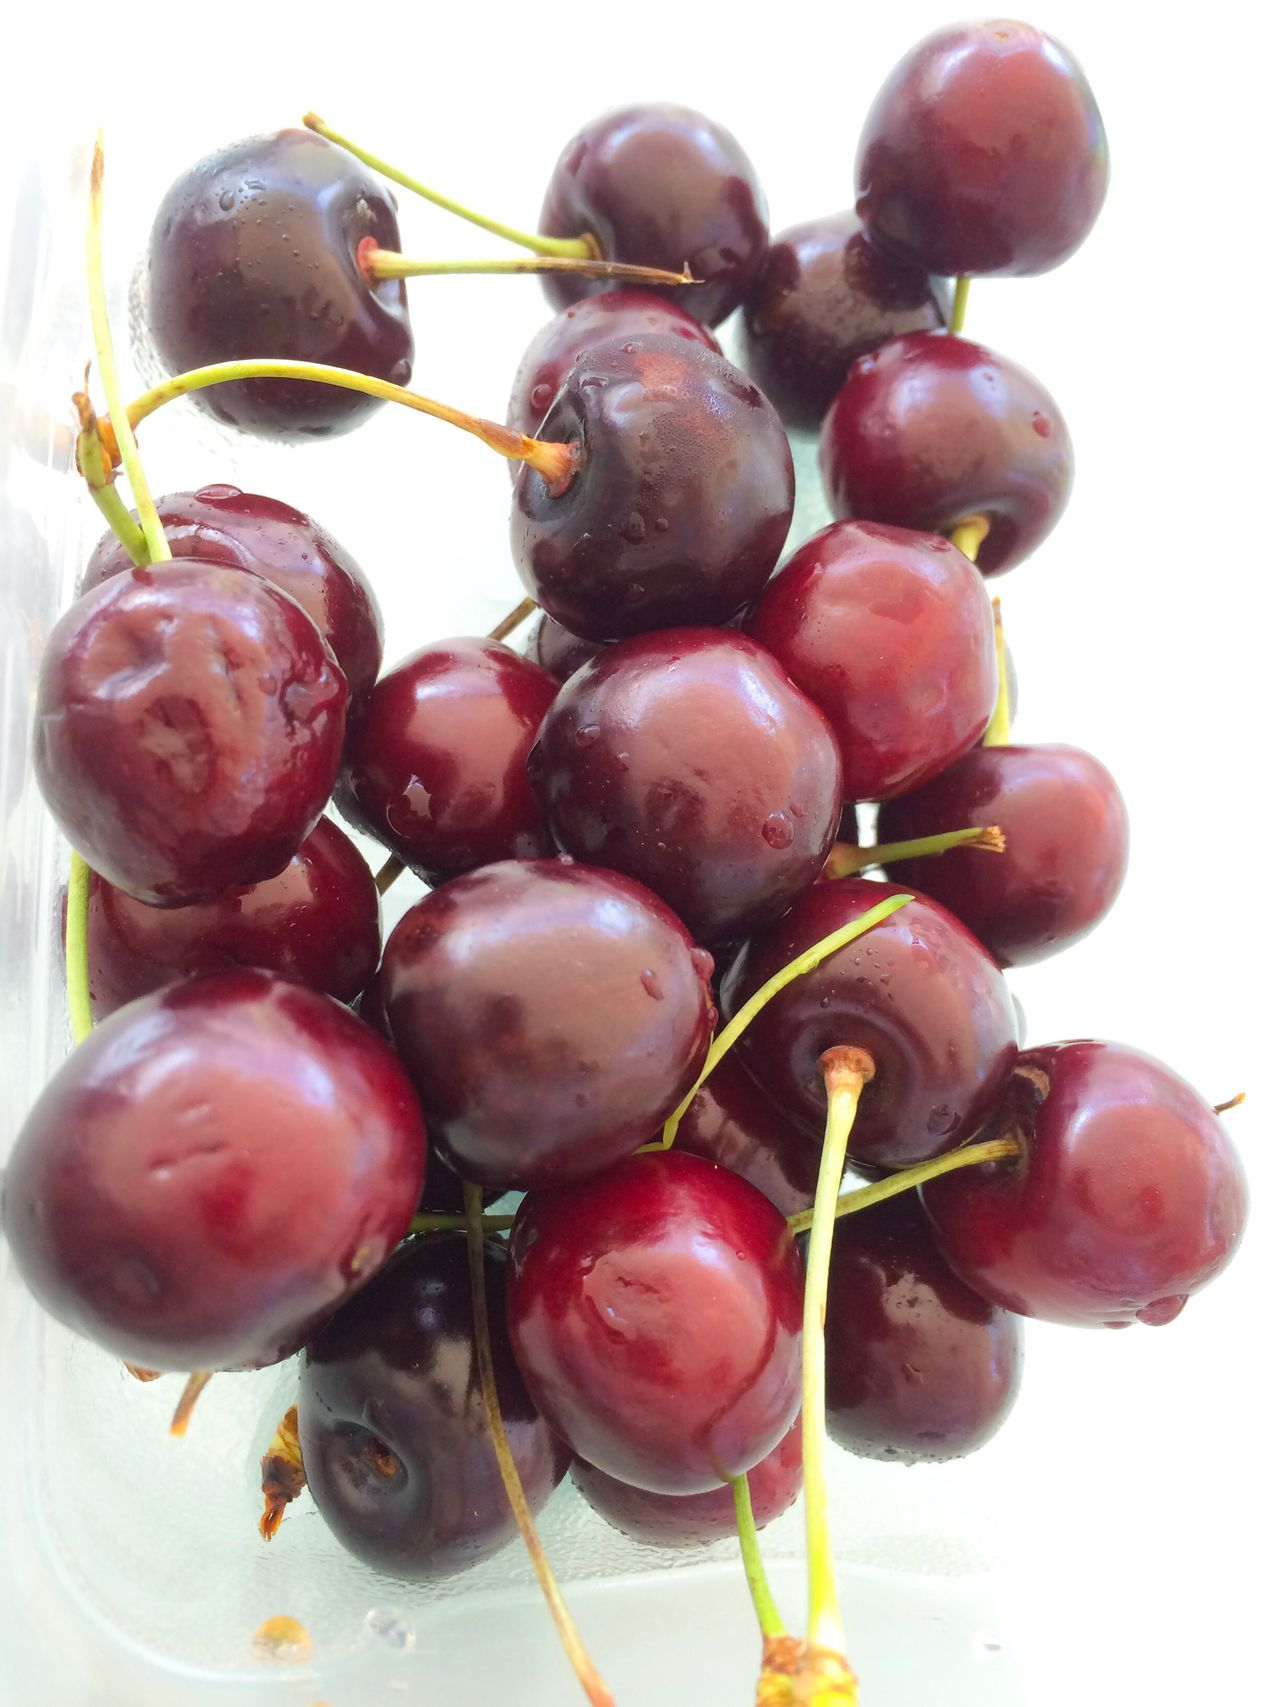 Cherries Healthy Eating Food And Drink Freshness Fruit Food Close-up Red No People Nature Day Outdoors Cherry Cherries